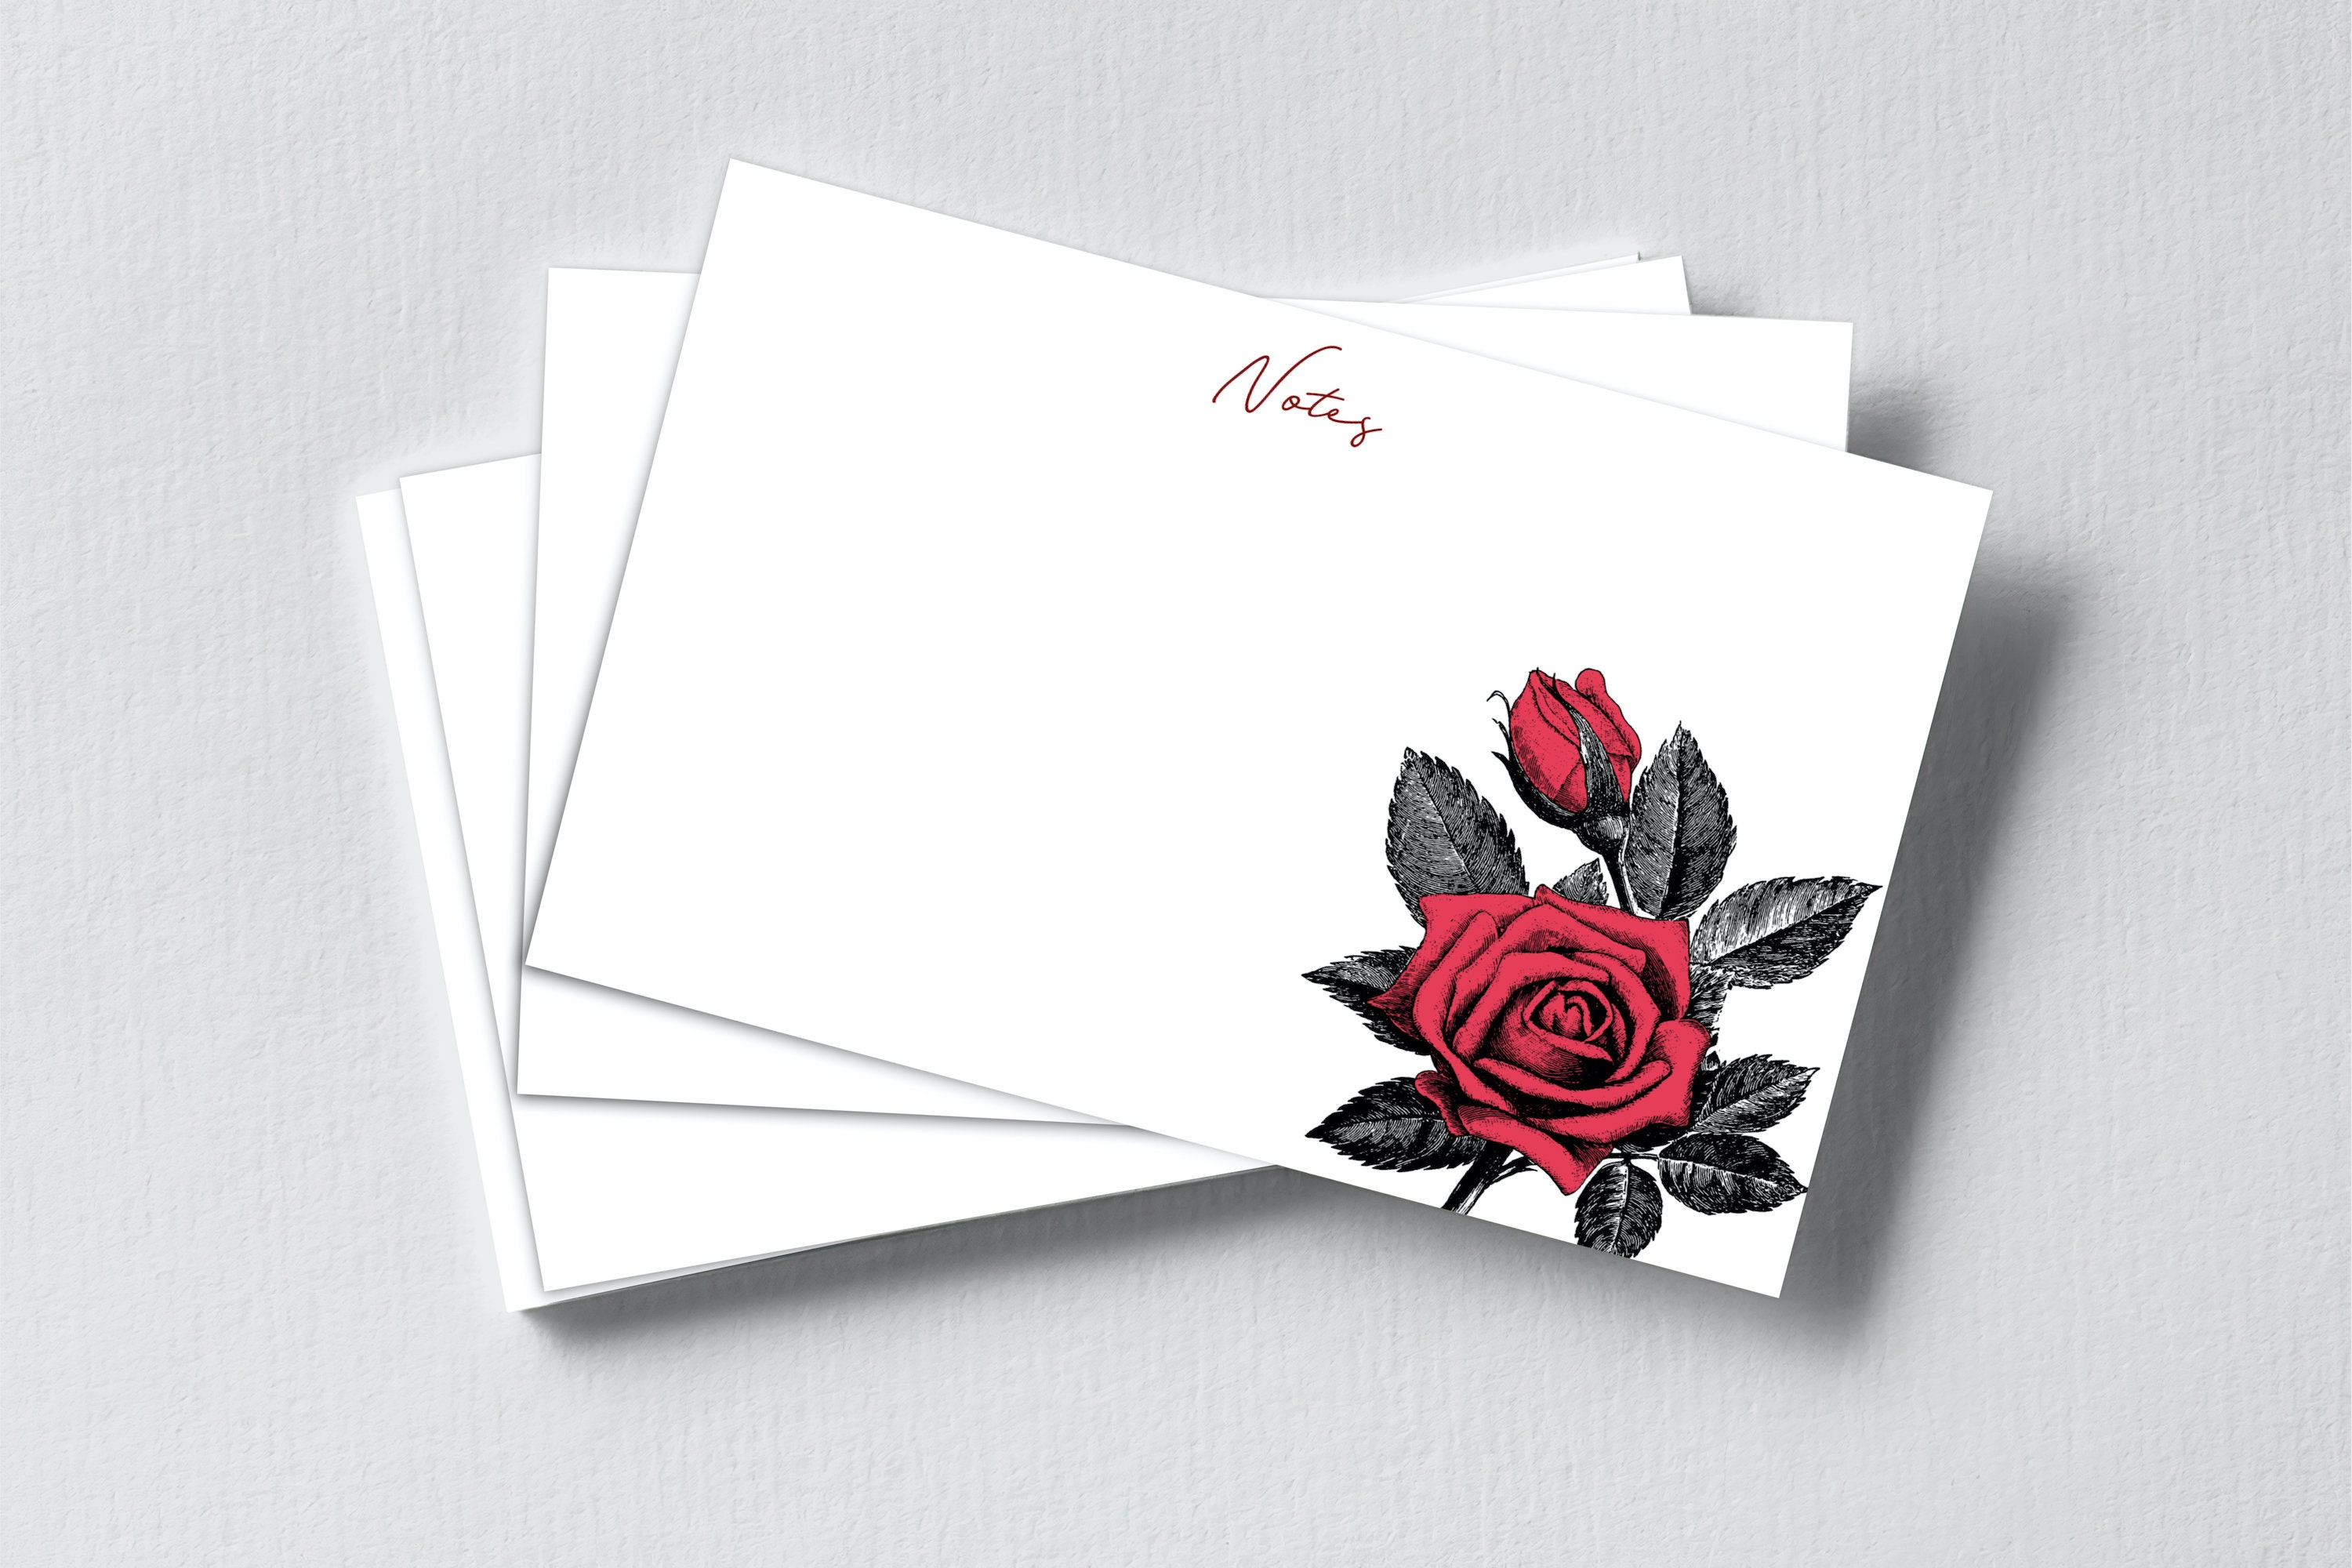 A stack of notecards with an illustration of a red rose on each.